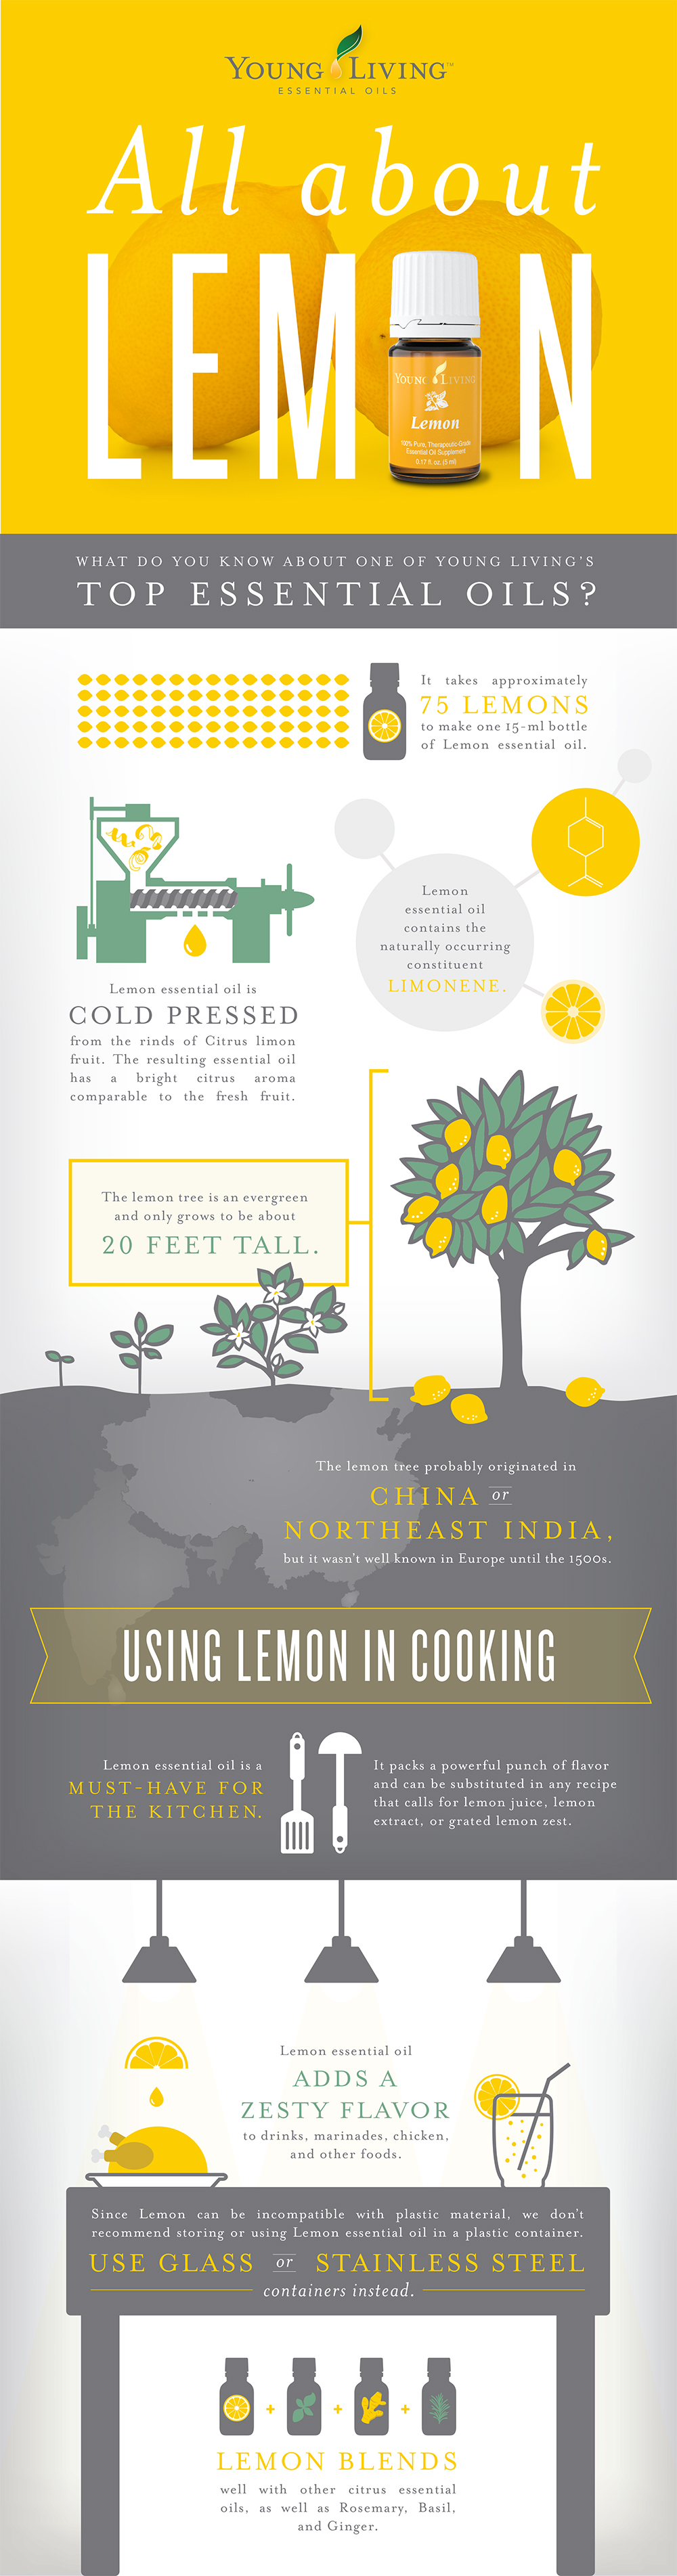 All About Lemon Oil Infographic